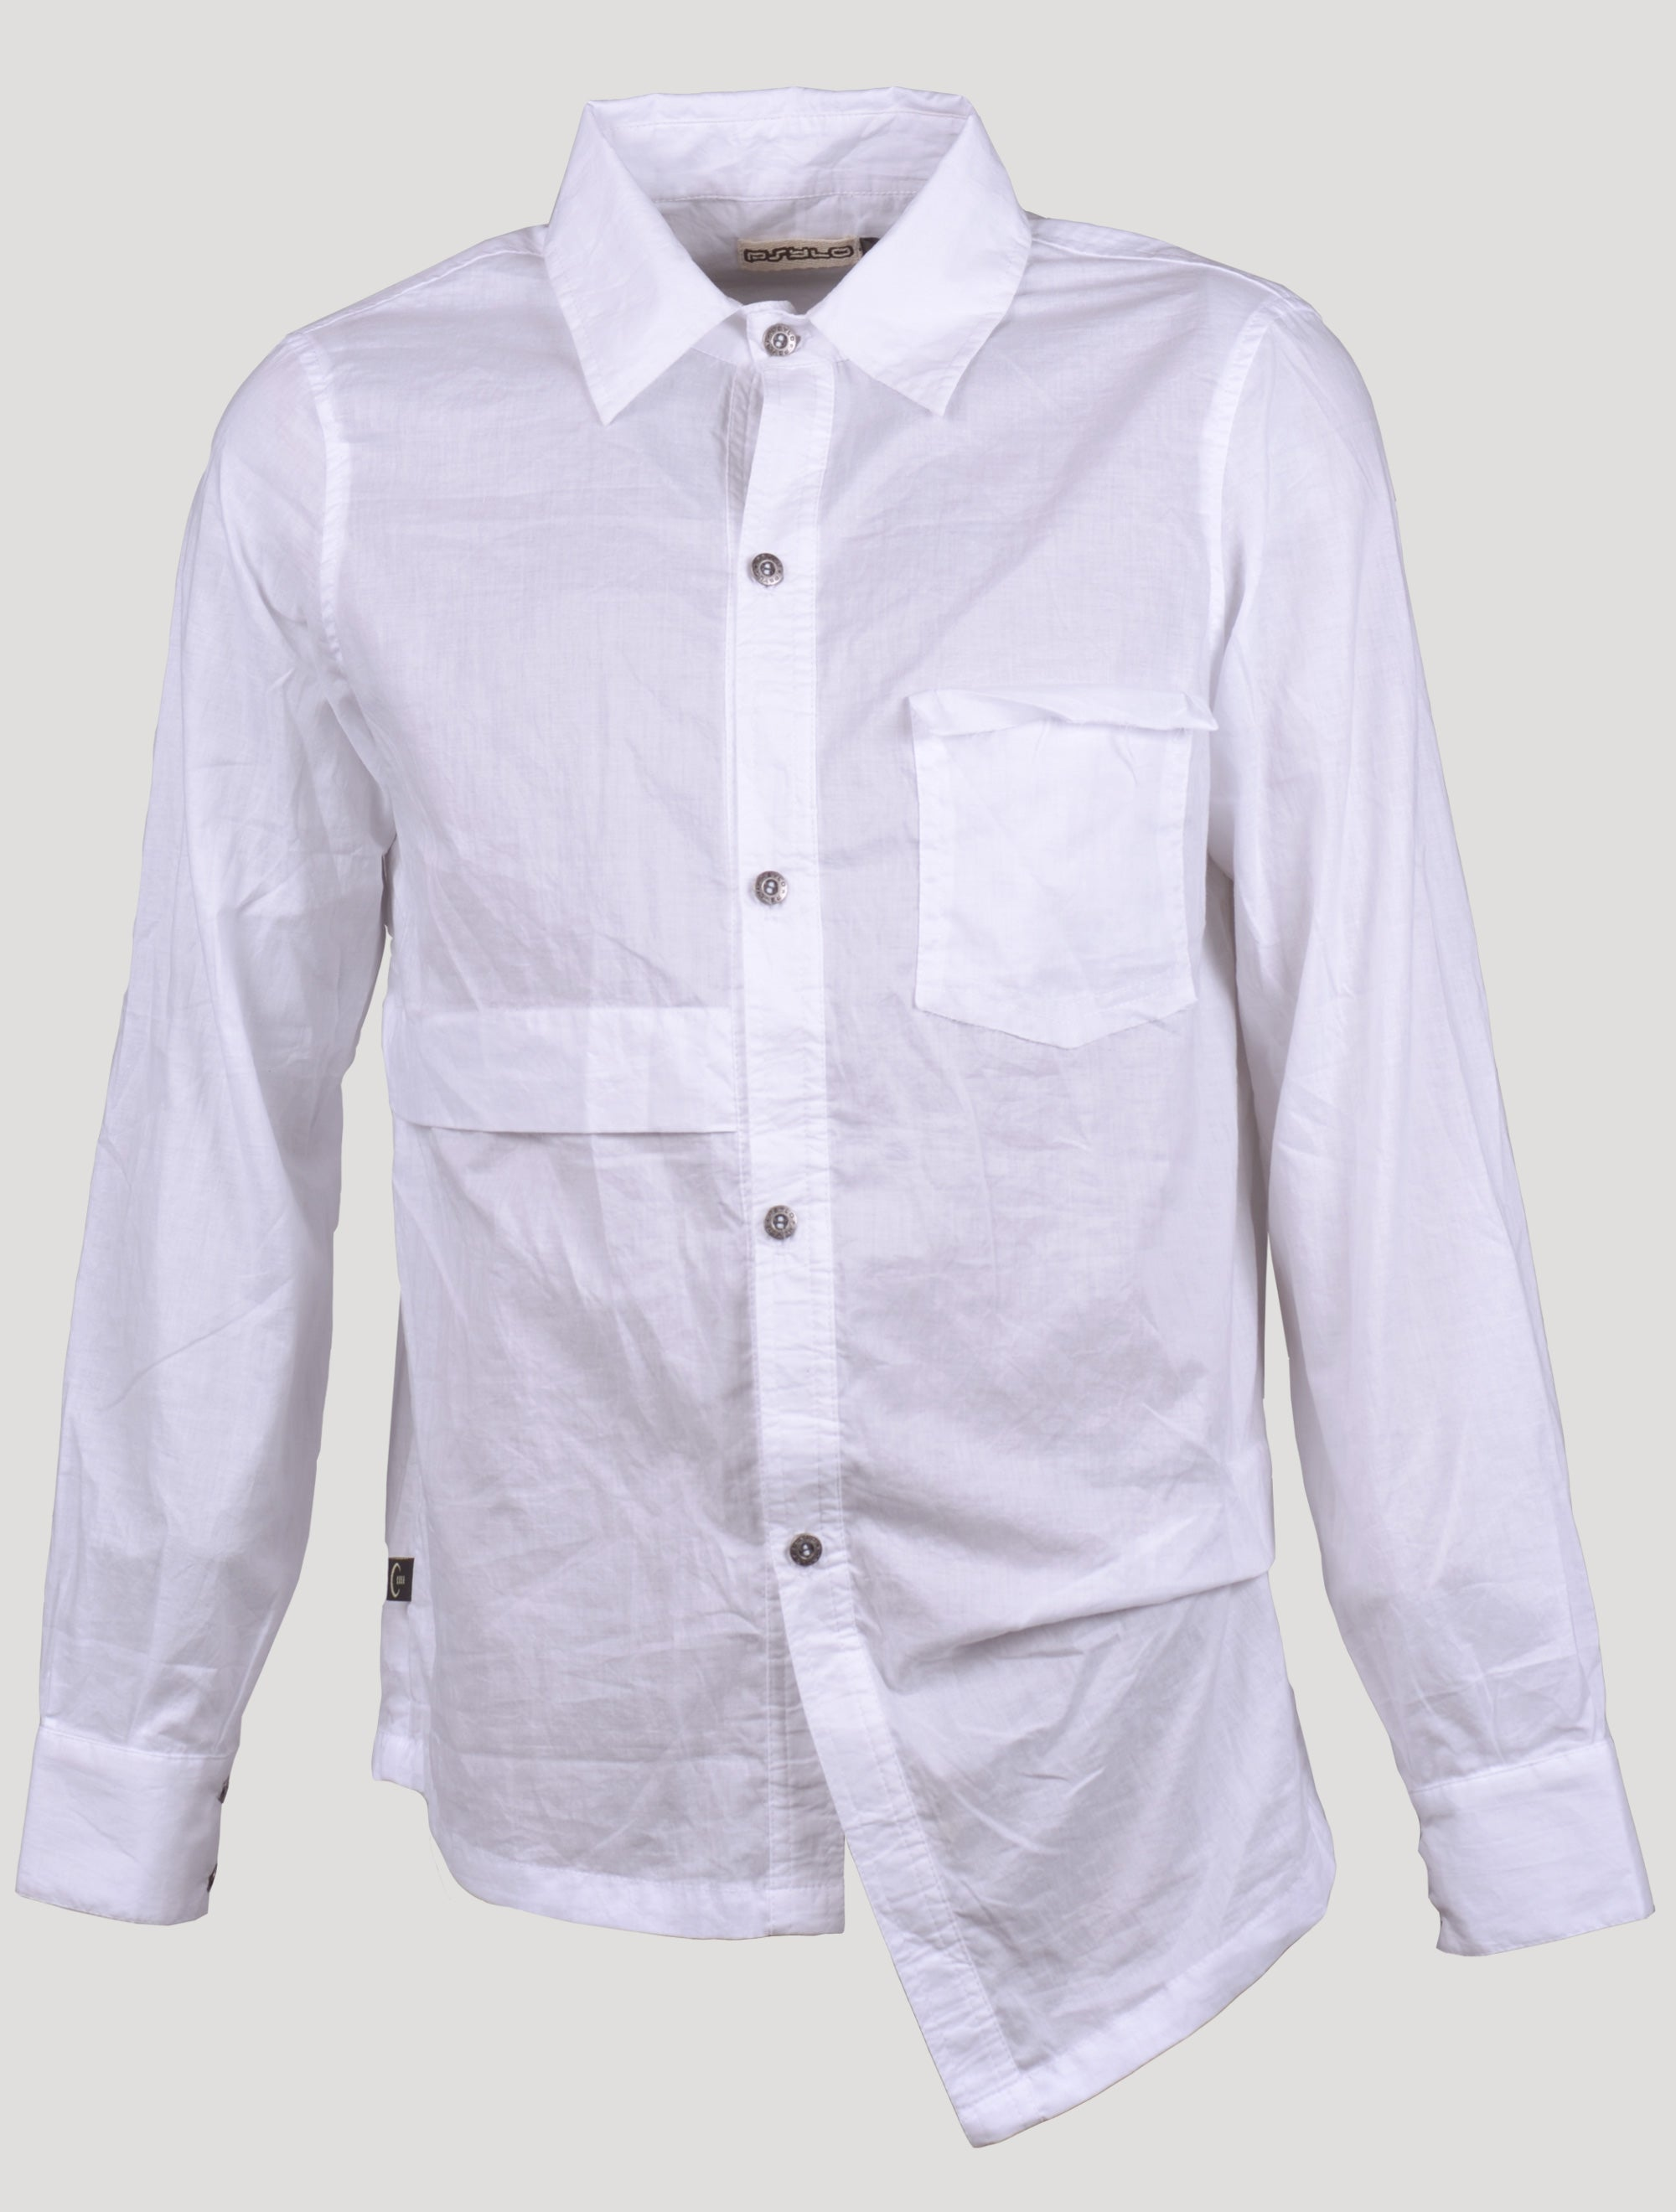 XLS Long Sleeves Shirt